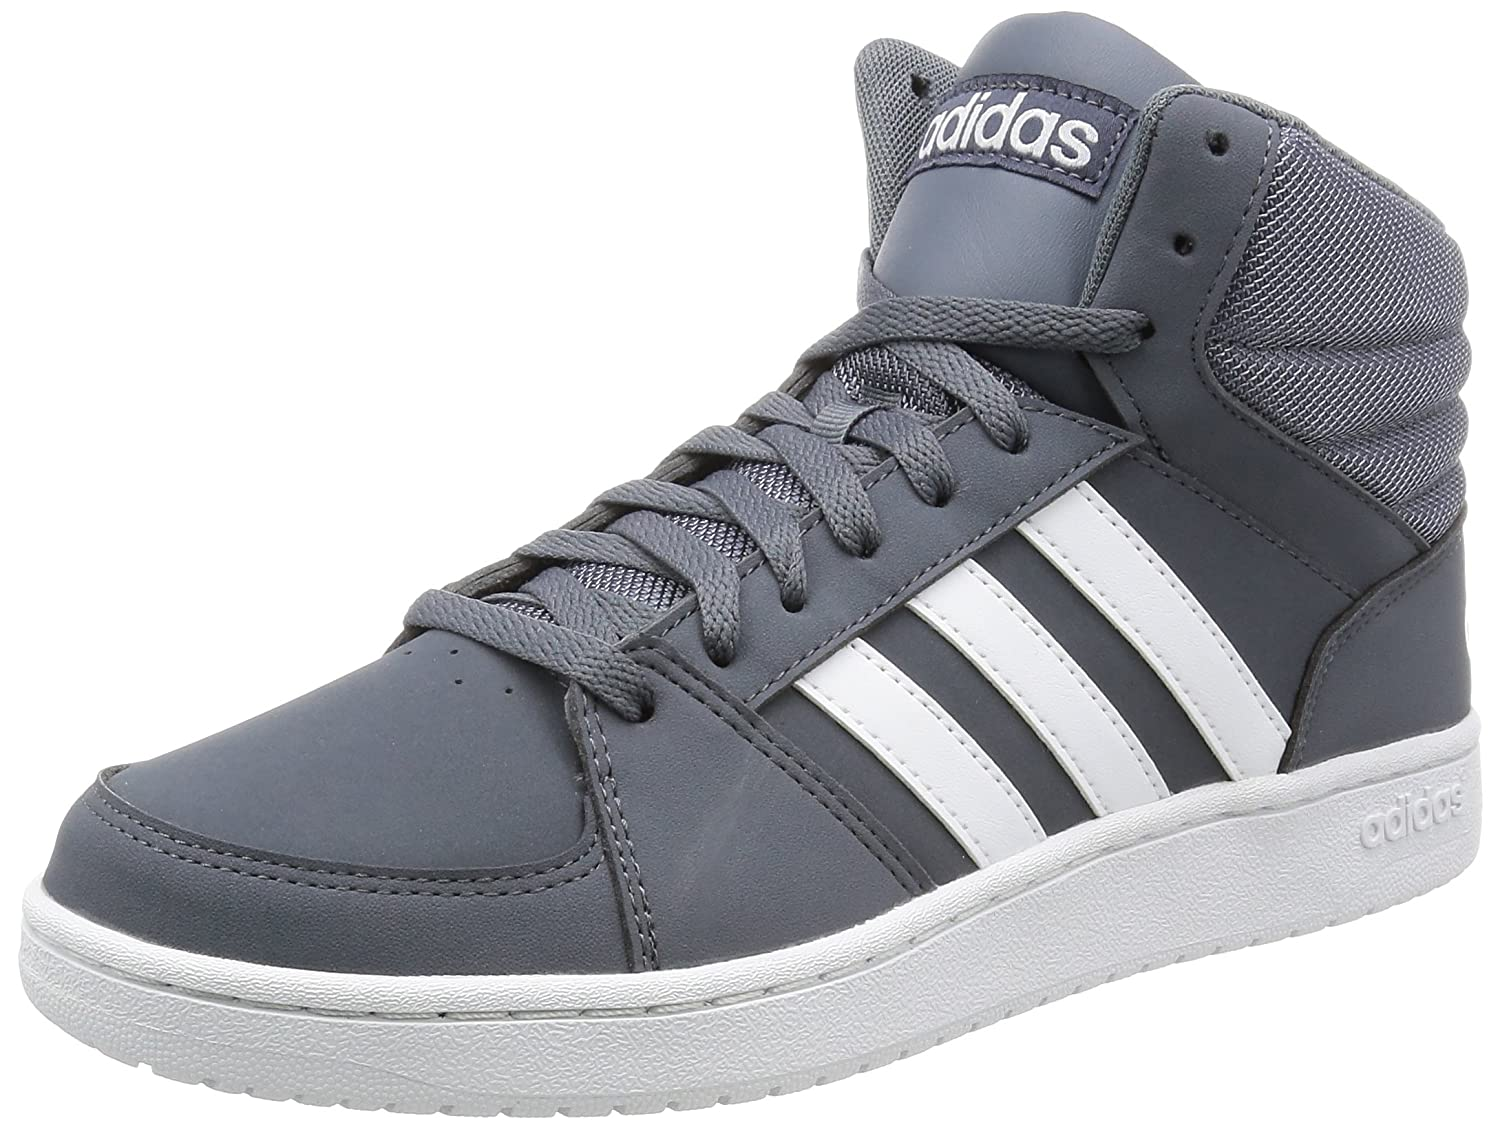 43652bb23d0f0 italy adidas neo mid high temperature 11ed8 a9080